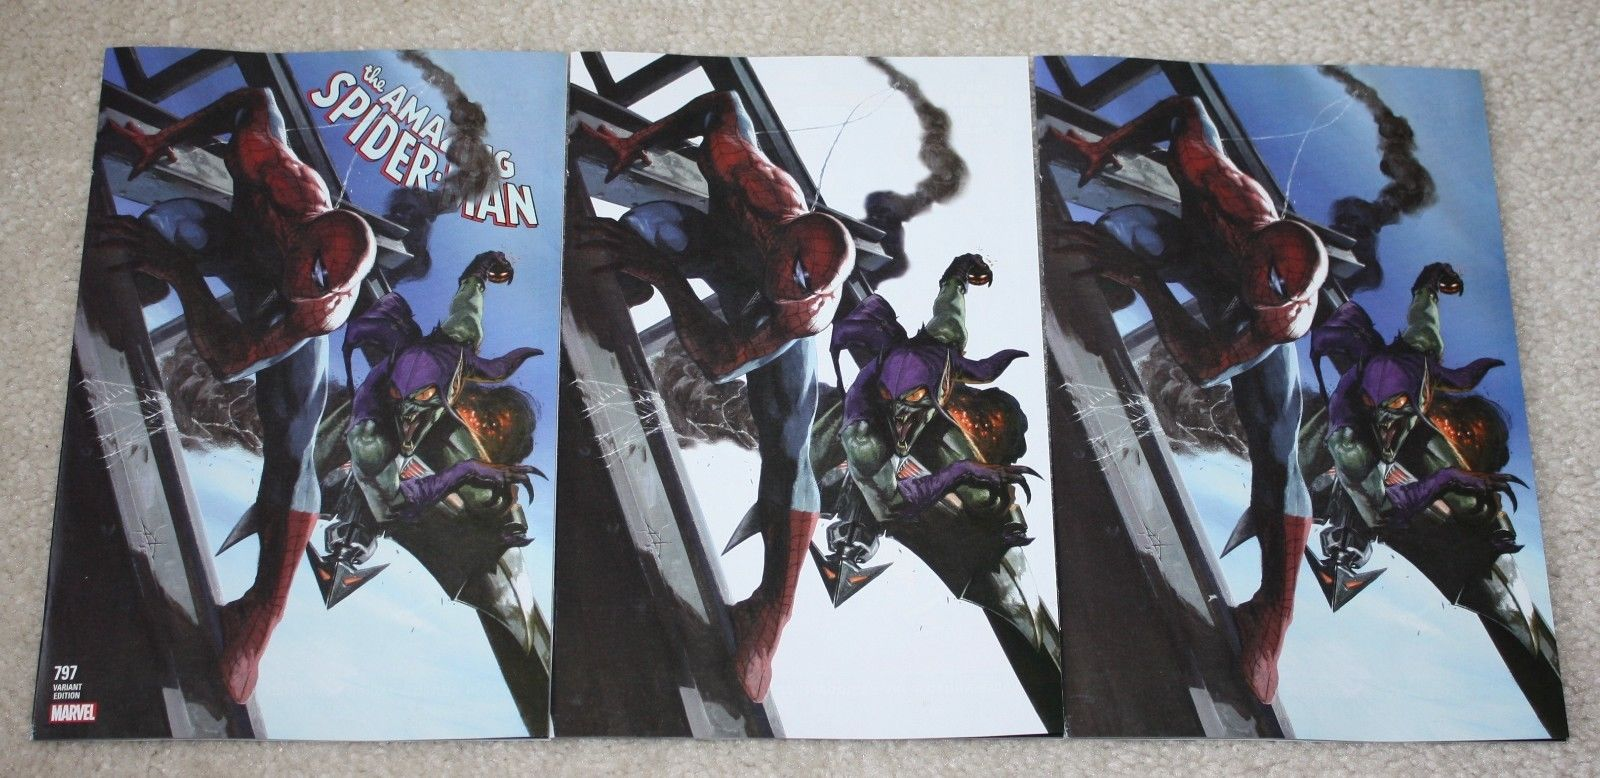 AMAZING SPIDER-MAN #797 GABRIELLE DELL OTTO EXCLUSIVE VARIANT RED GOBLIN 3-PACK